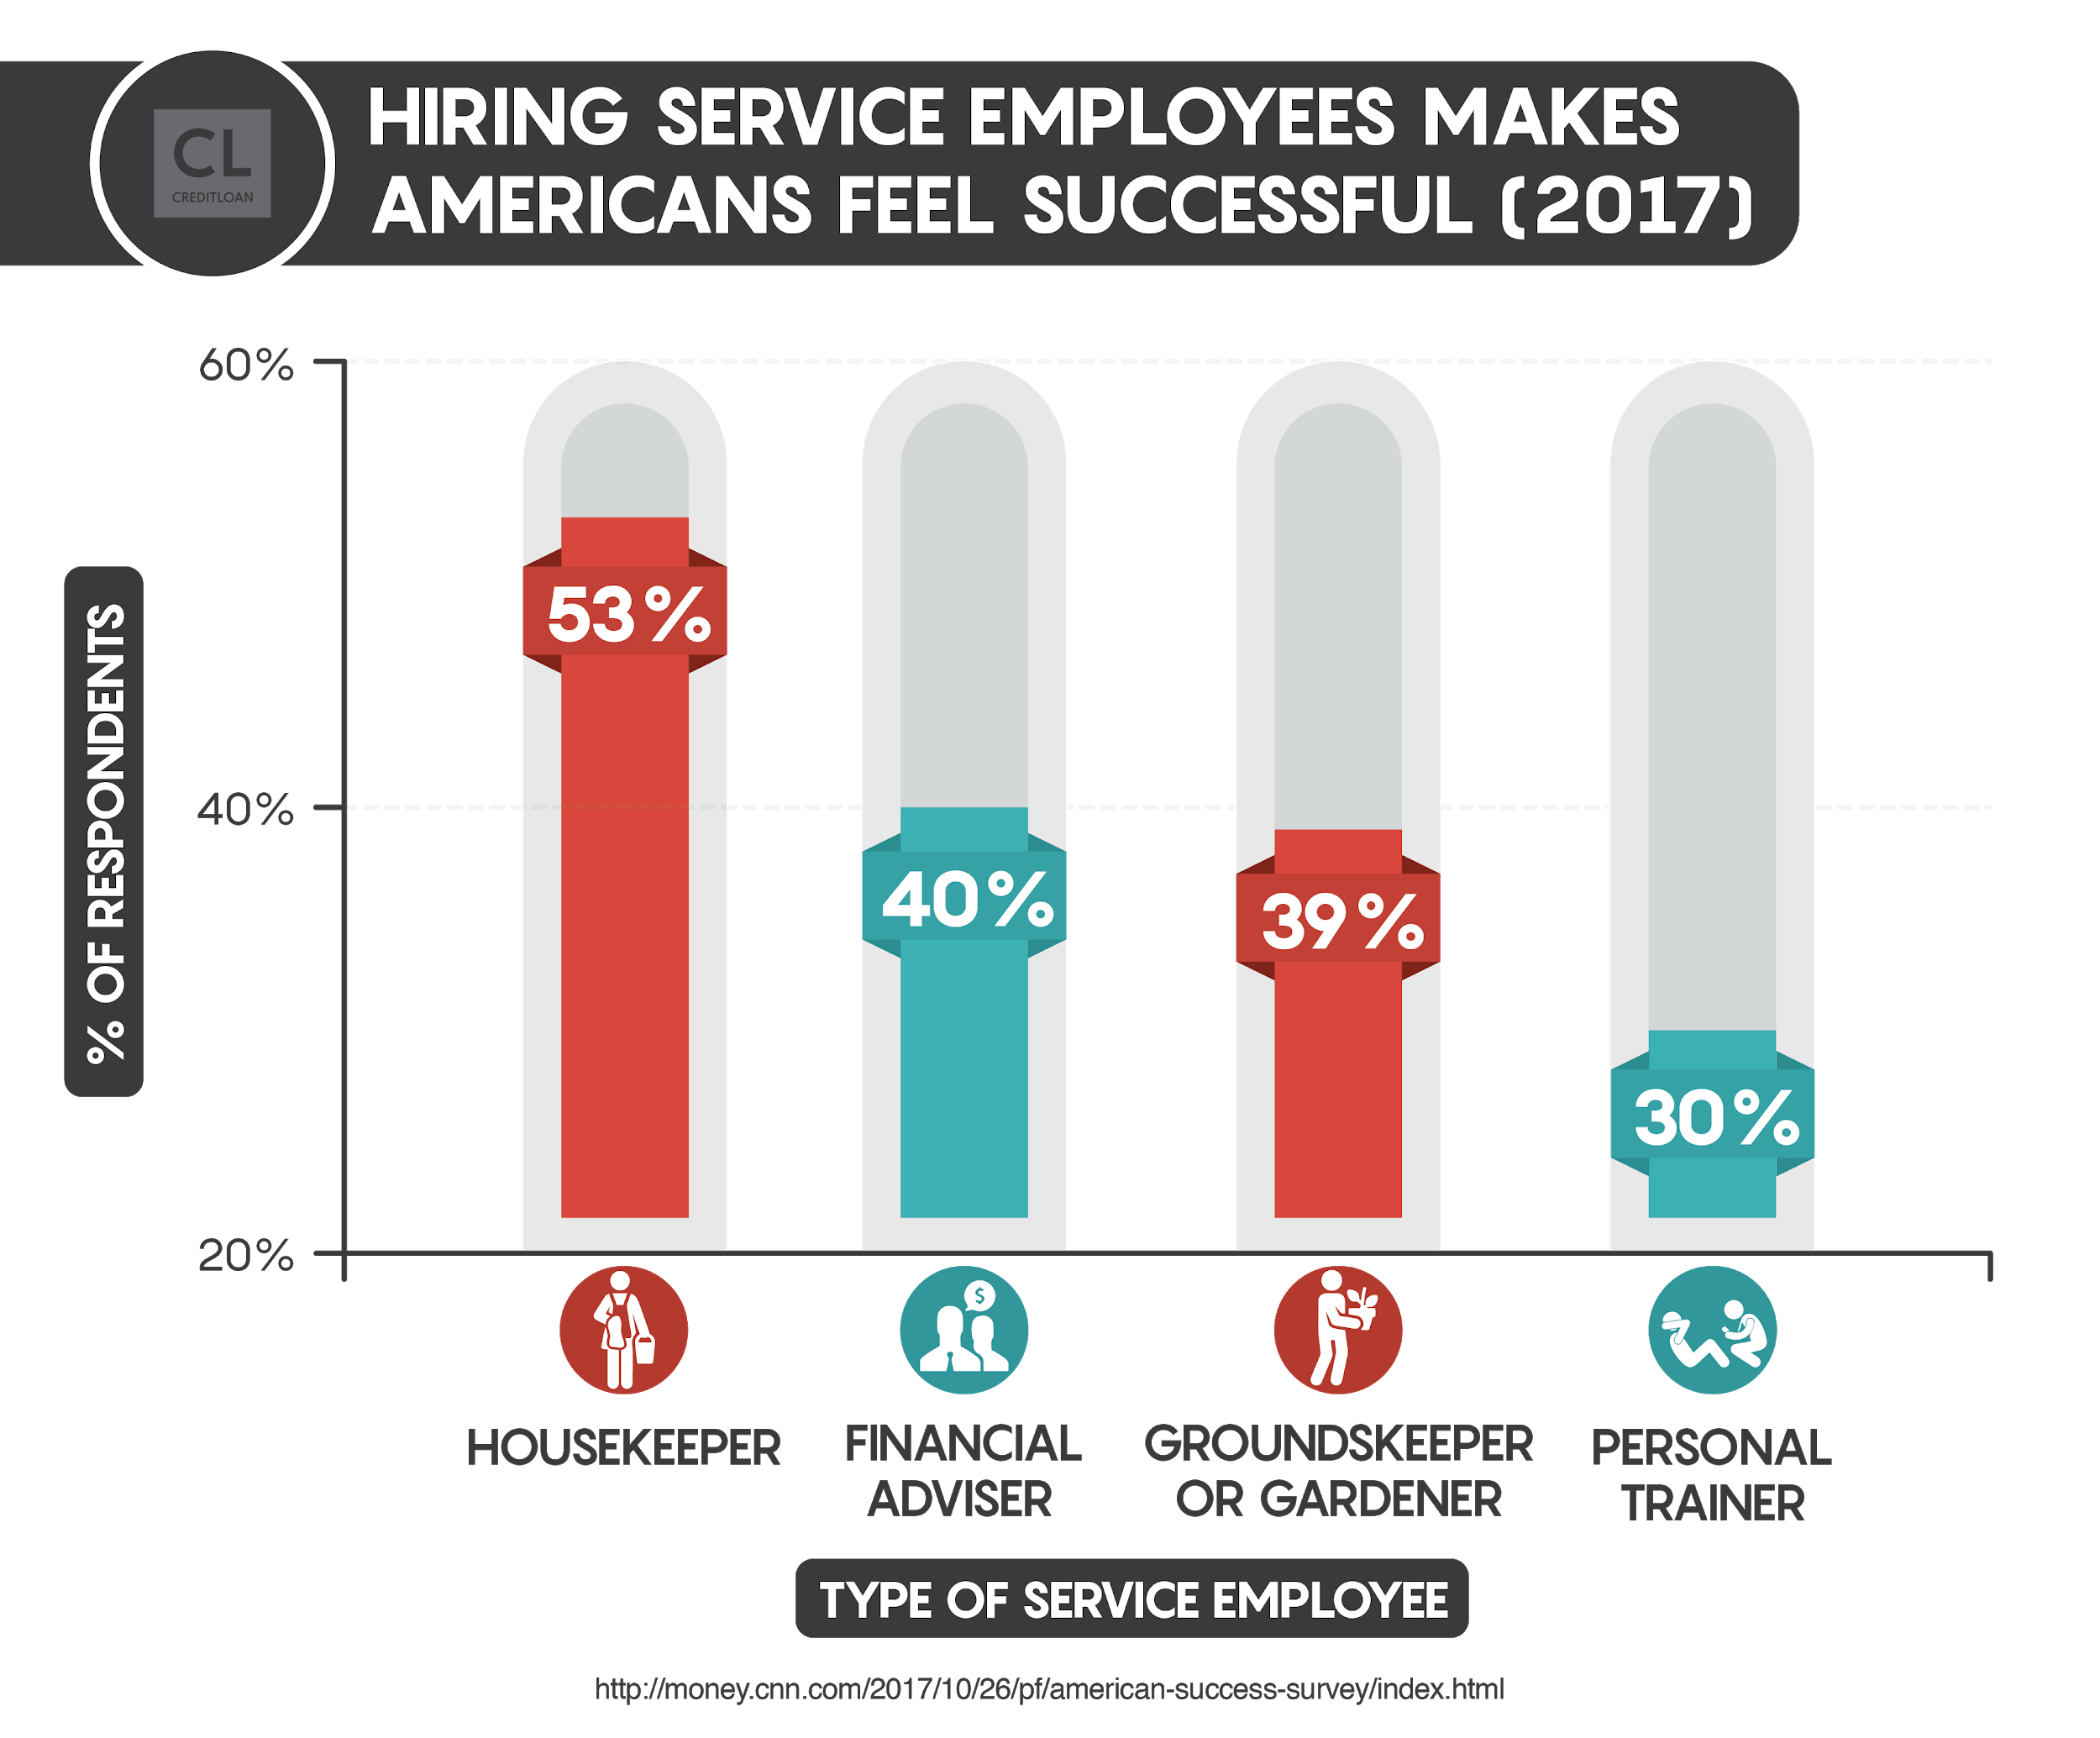 Hiring Service Employees Makes Americans Feel Successful